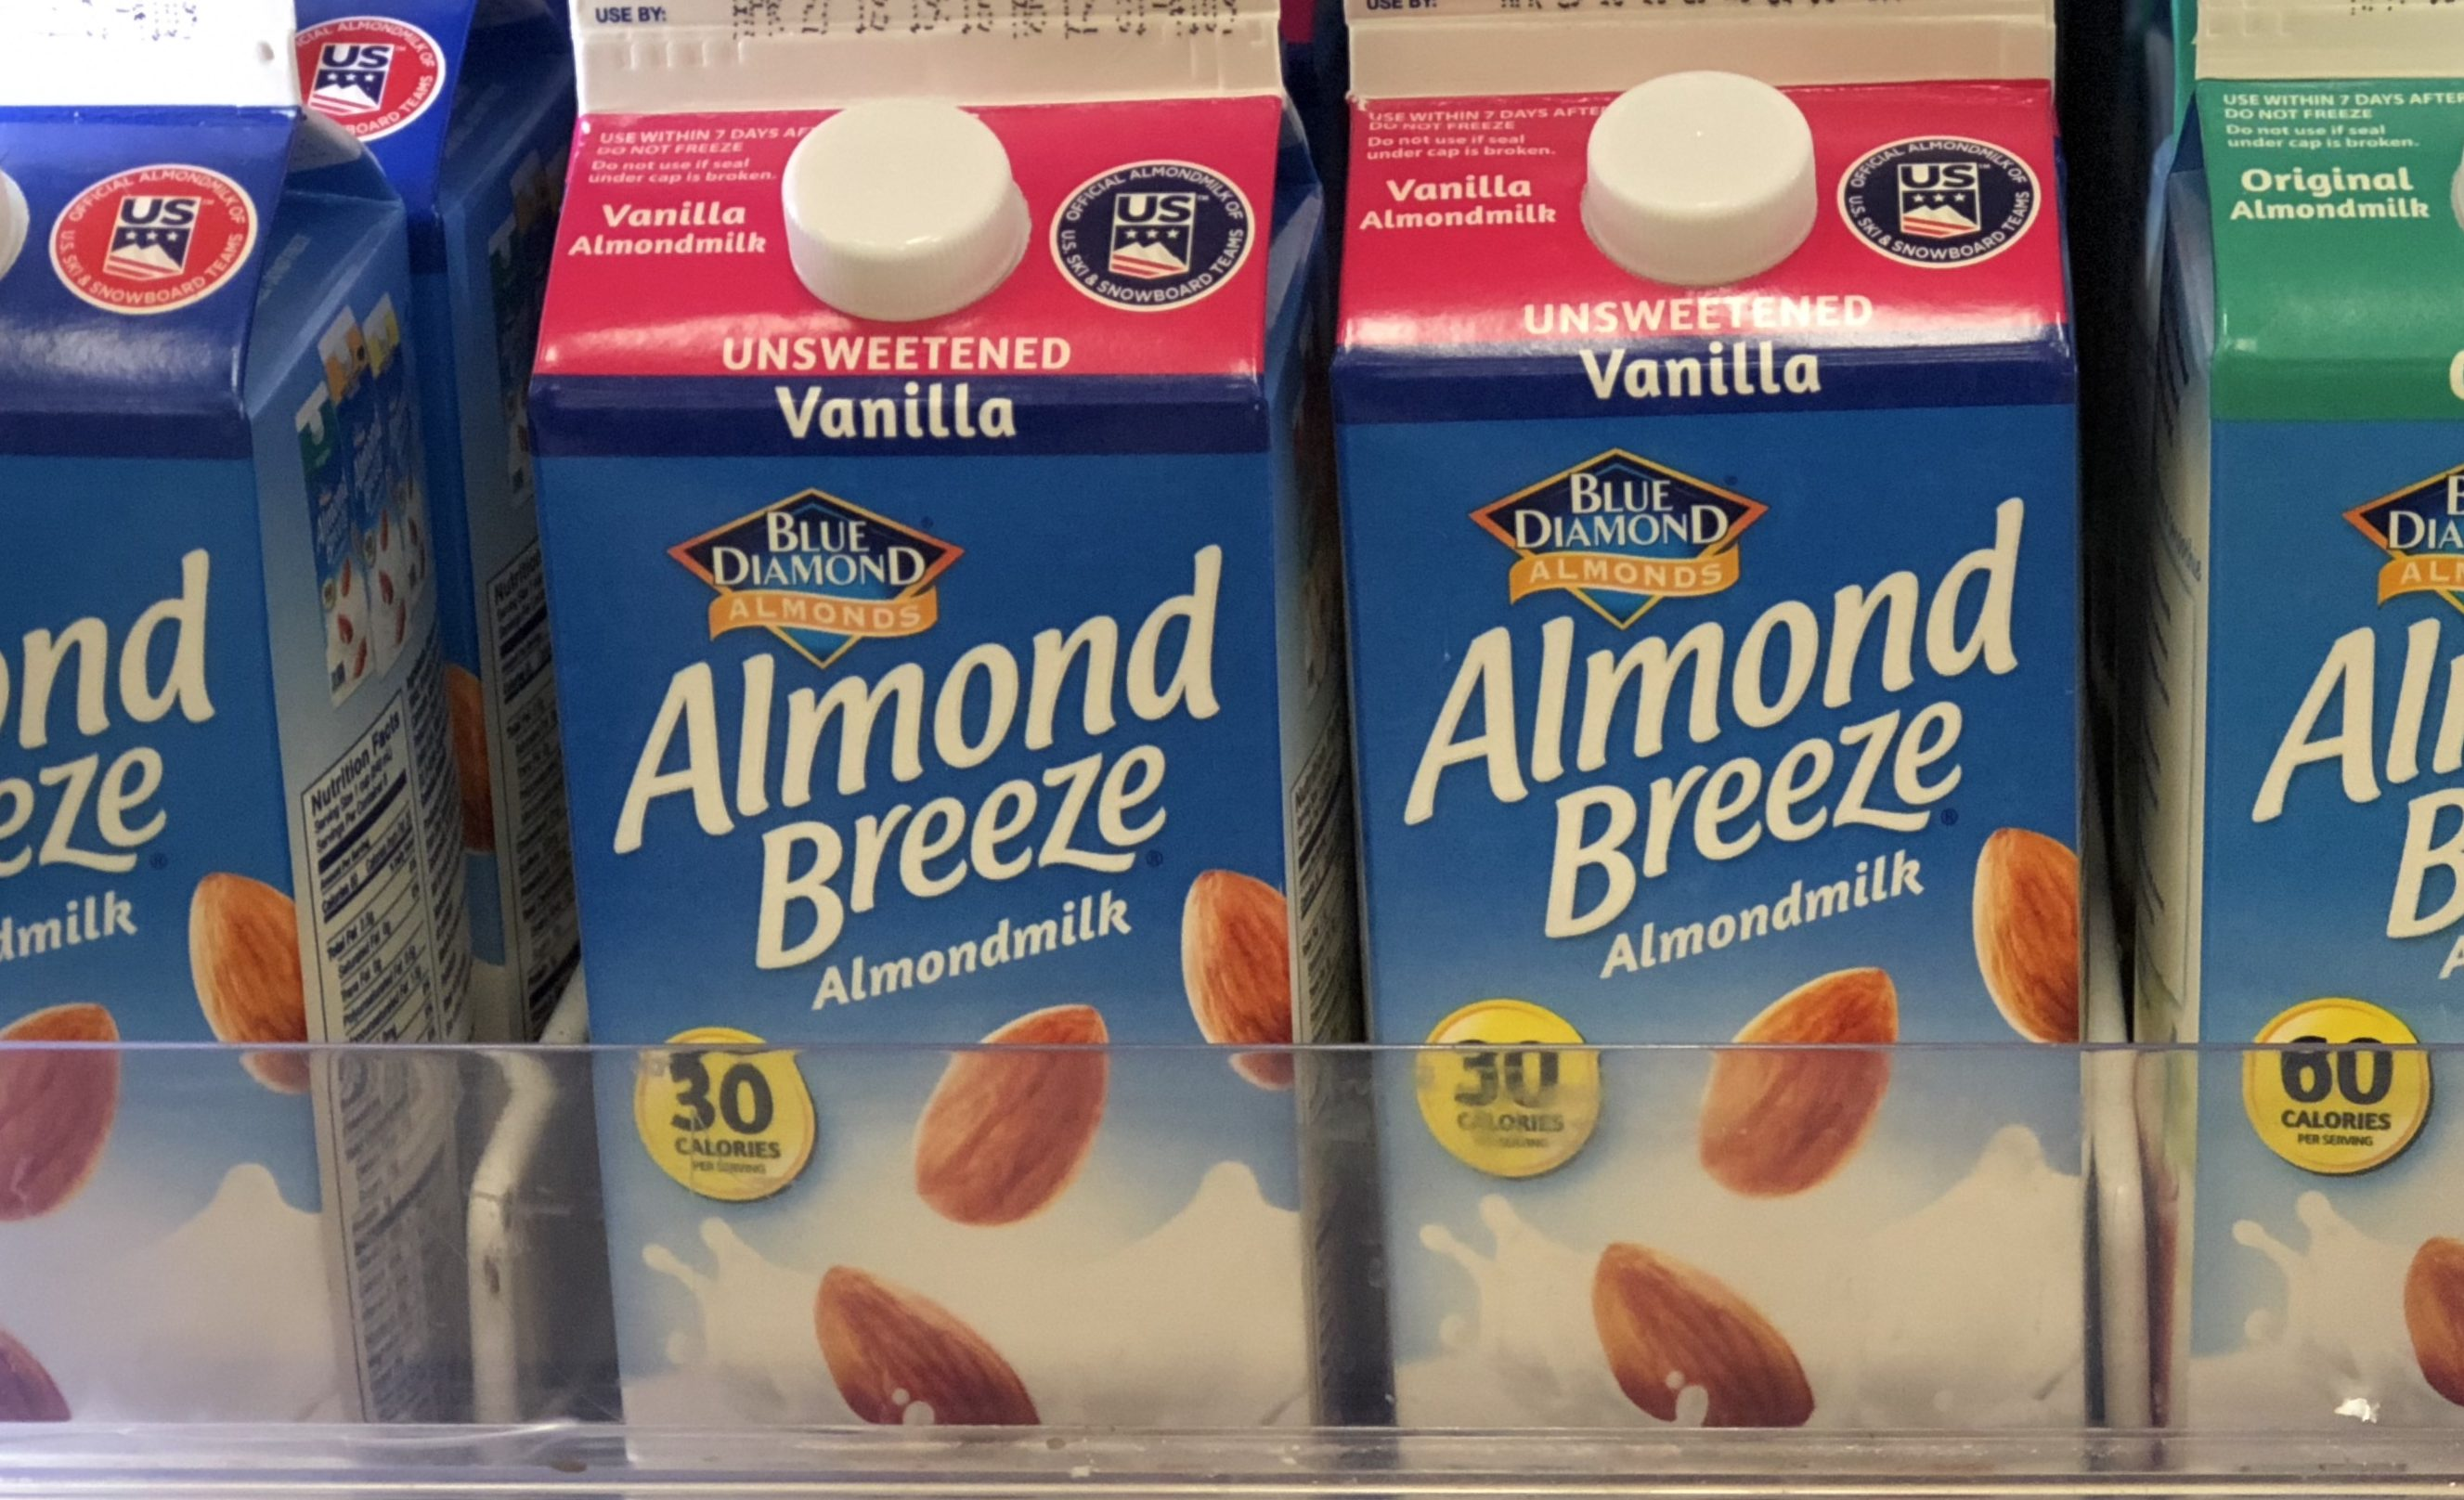 vanilla almond breeze milk recalled – in the refrigerated section of the store